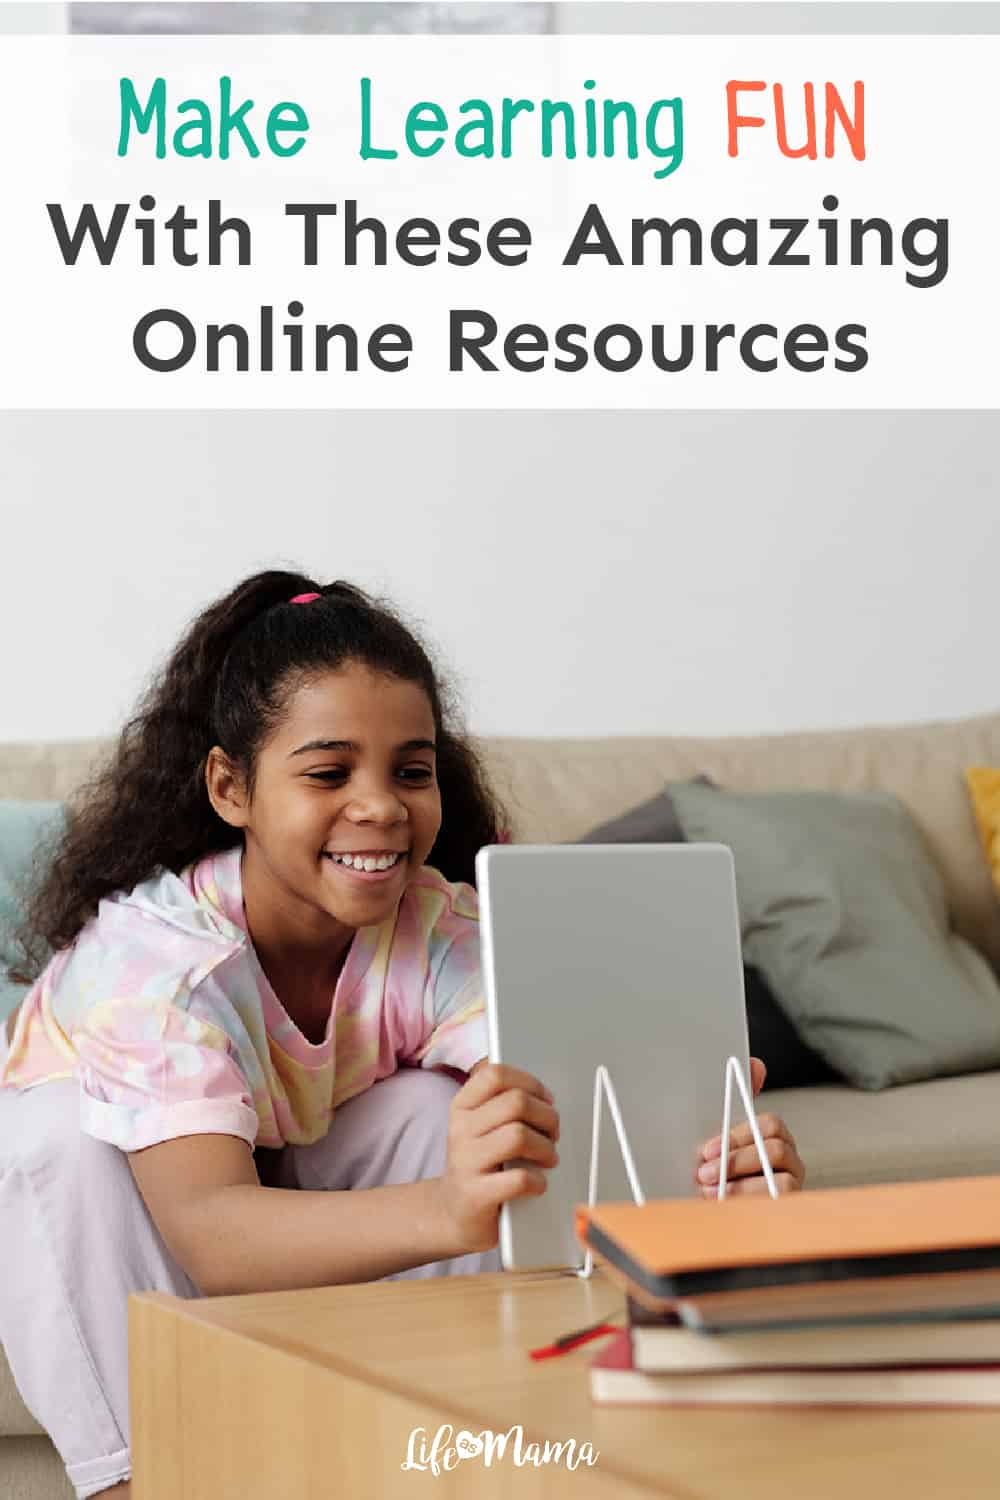 Make Learning Fun With These Amazing Online Resources-01-01